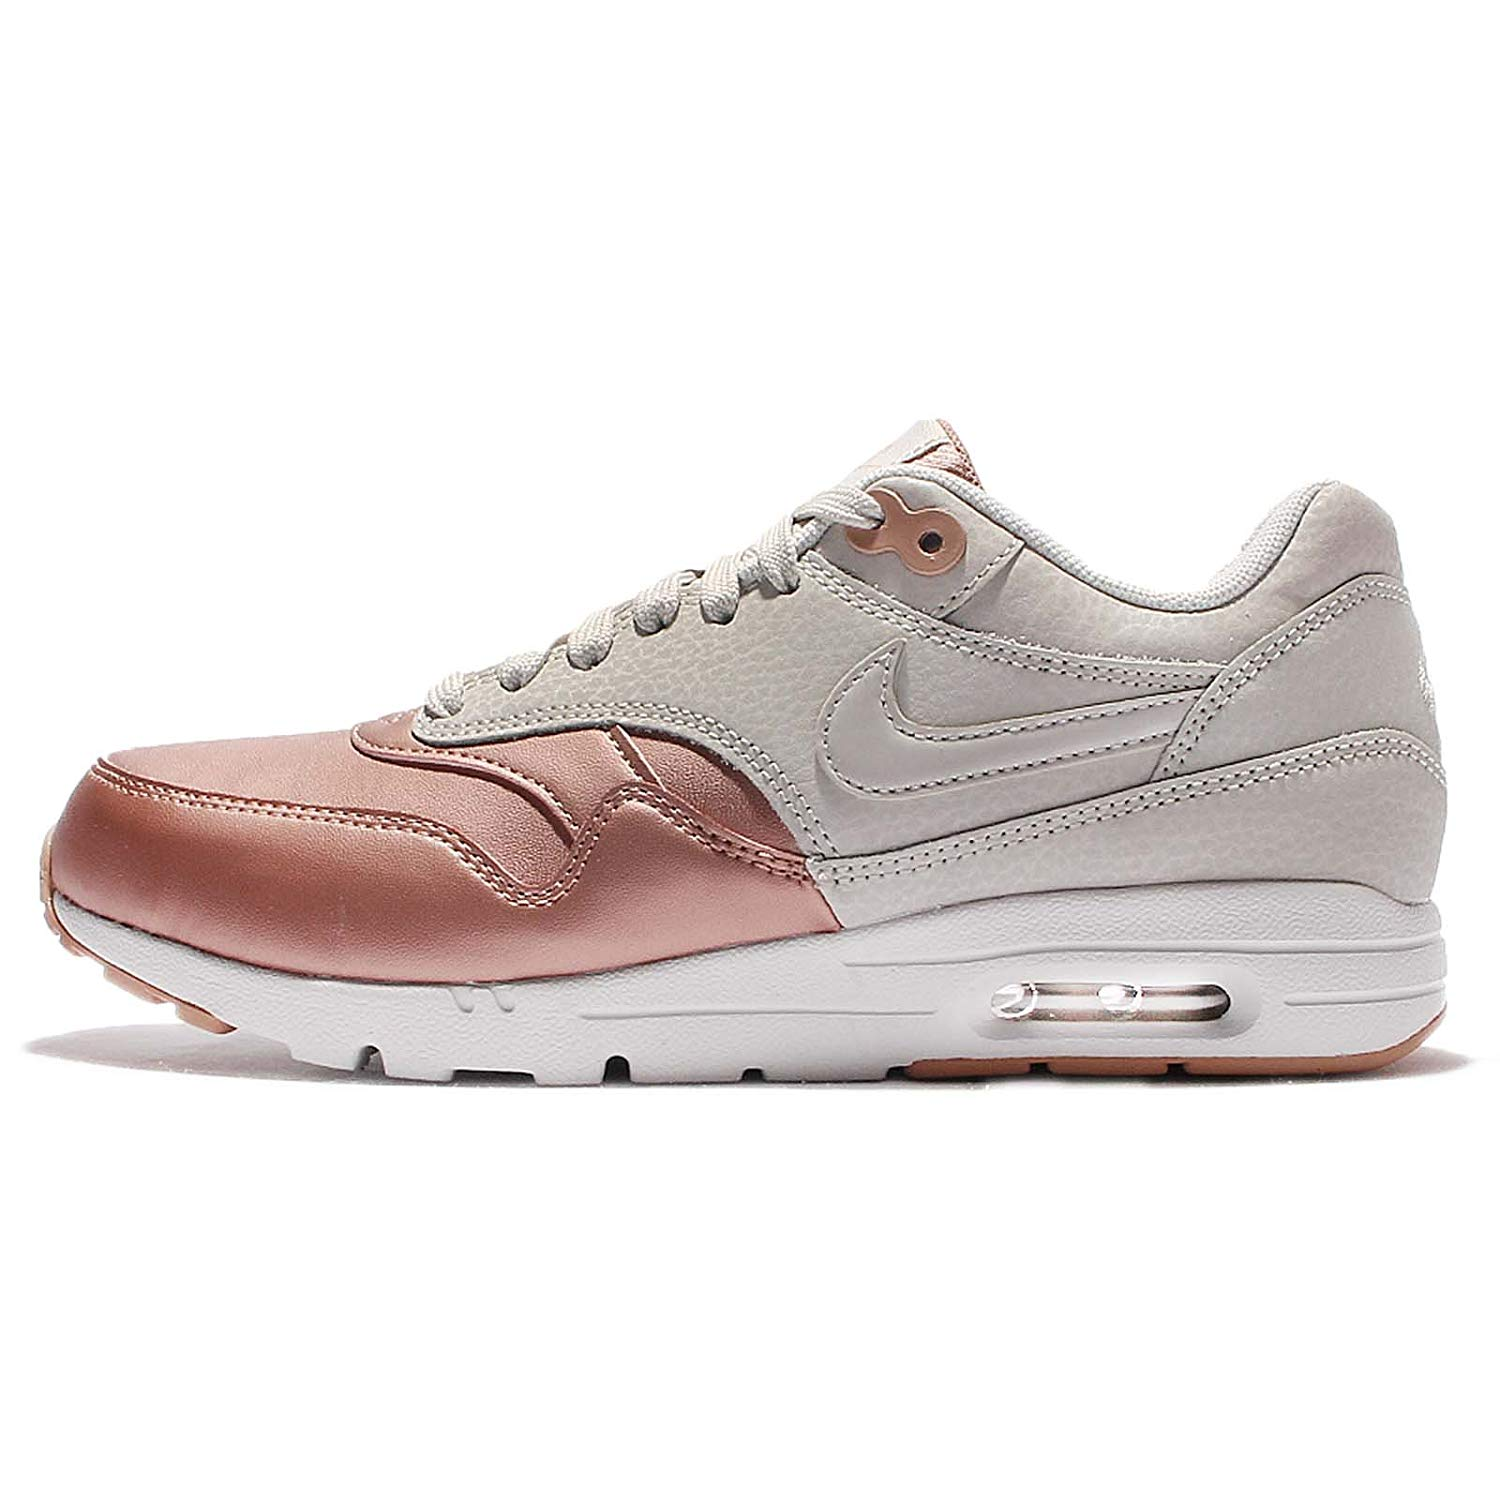 Nike Air Max 1 Ultra Essentials Womens Trainers 704993 Sneakers Shoes 8385436b8e